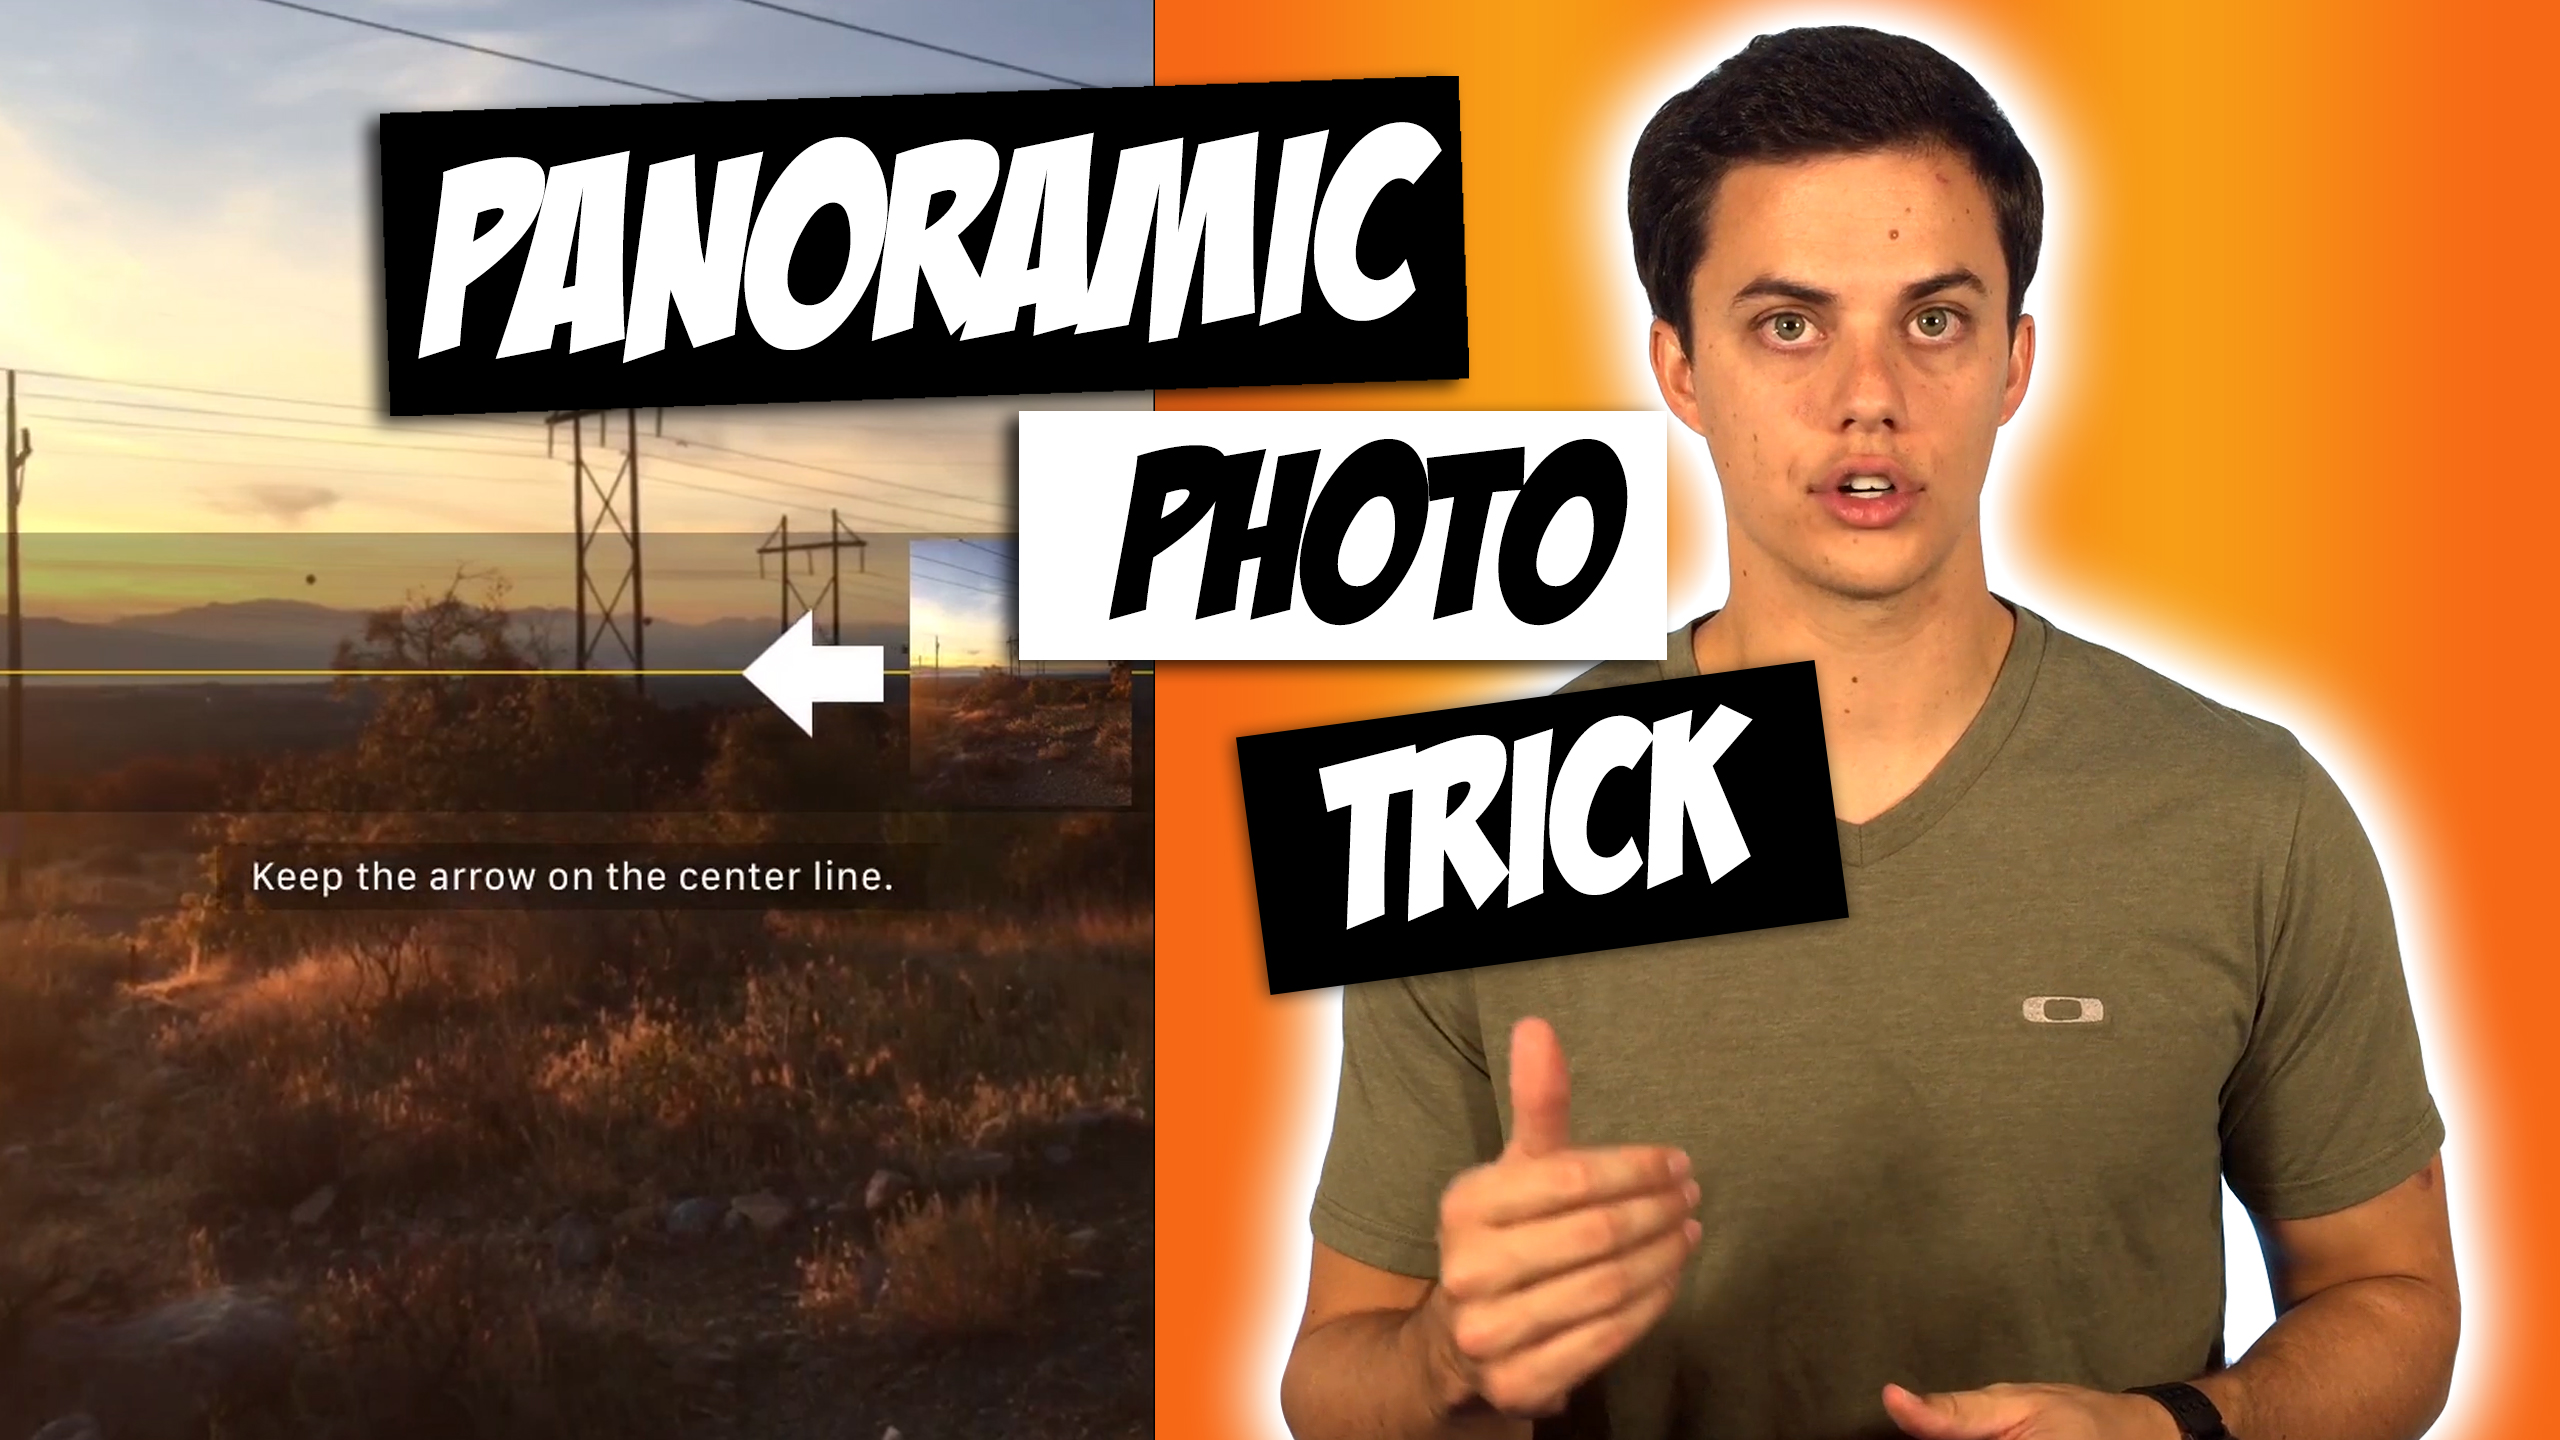 How to Change Panoramic Photo Direction